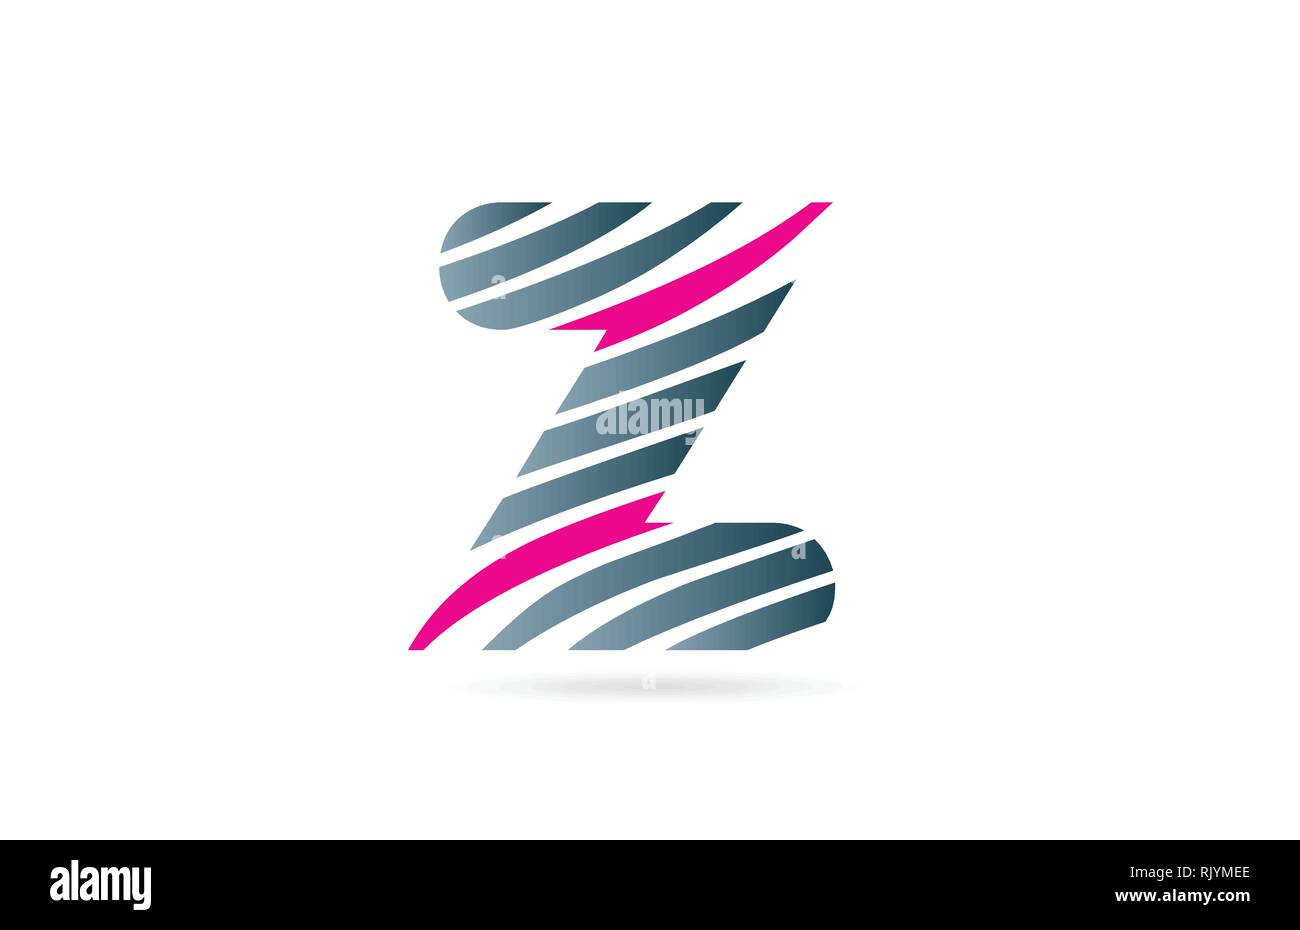 design of alphabet letter z with lines stripe as a logo for a